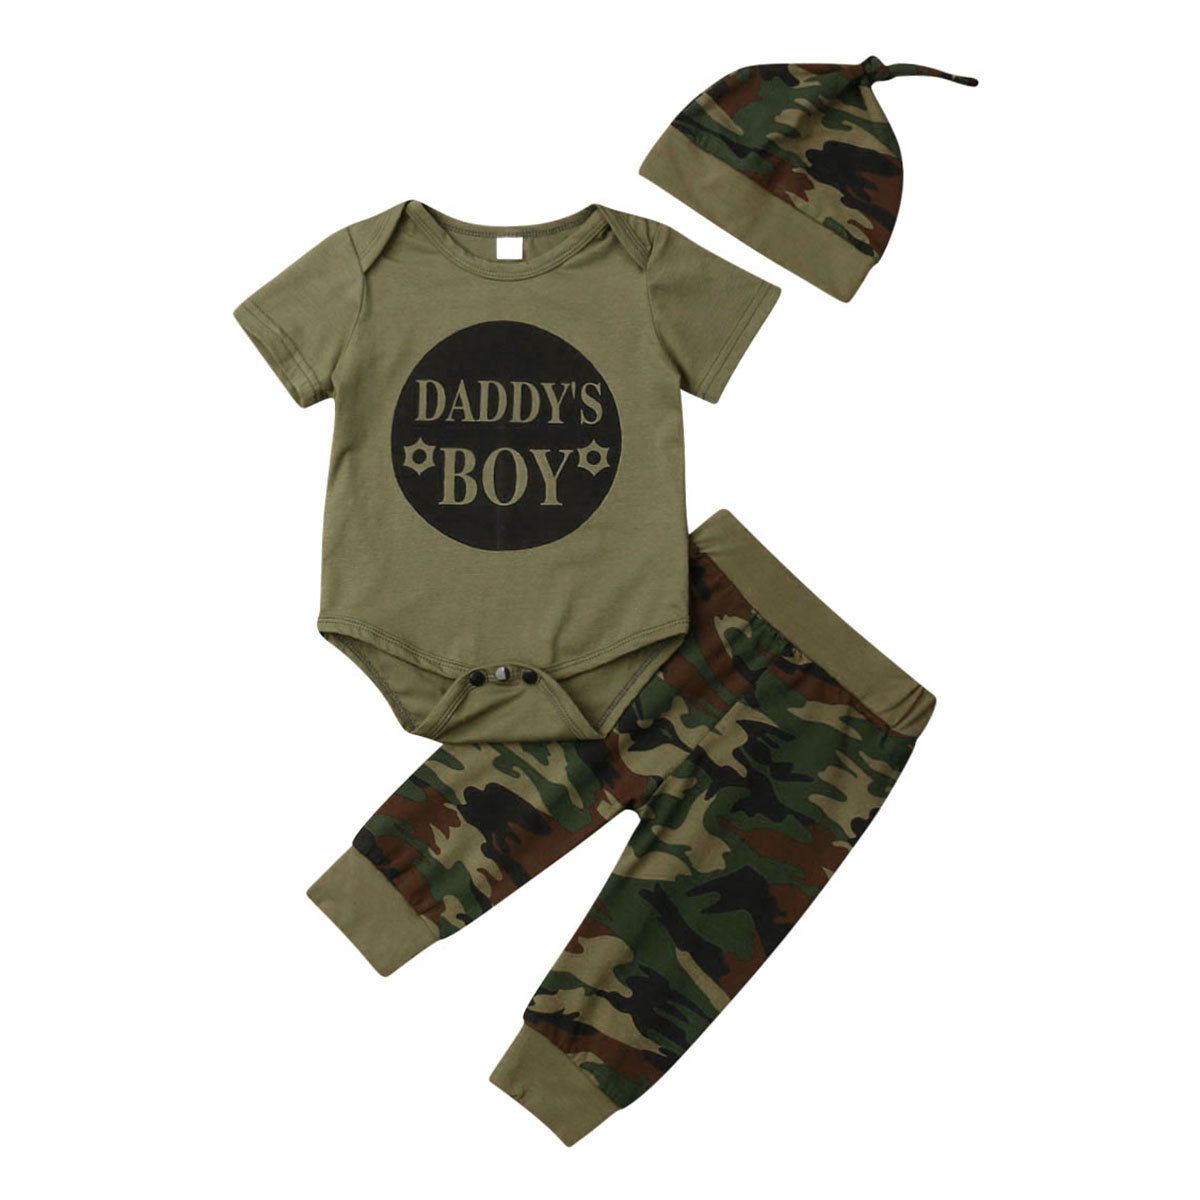 DADDY´S BOY GIRL Clothes Set Camo Newborn Baby Boy Girl T-shirt Tops Camouflage Pants Hat 3pcs Outfits Christmas Clothes 0-24M